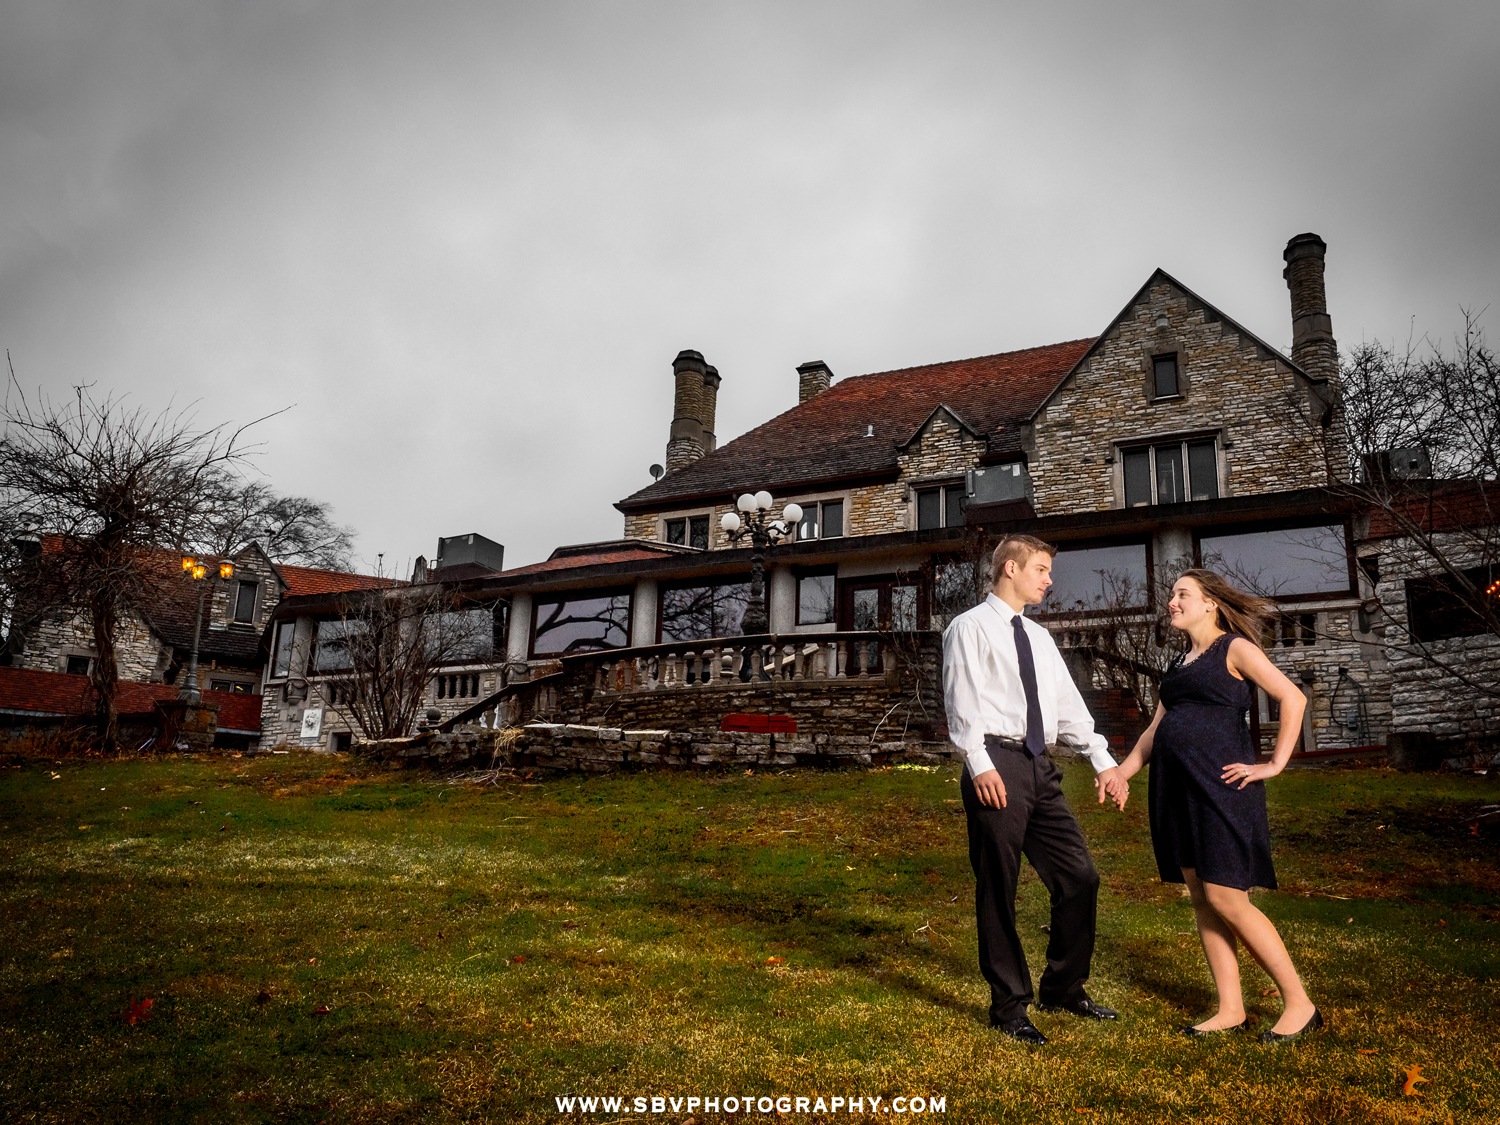 A husband and wife celebrate their pregnancy with portraits at Meyer's Castle in Dyer, Indiana.